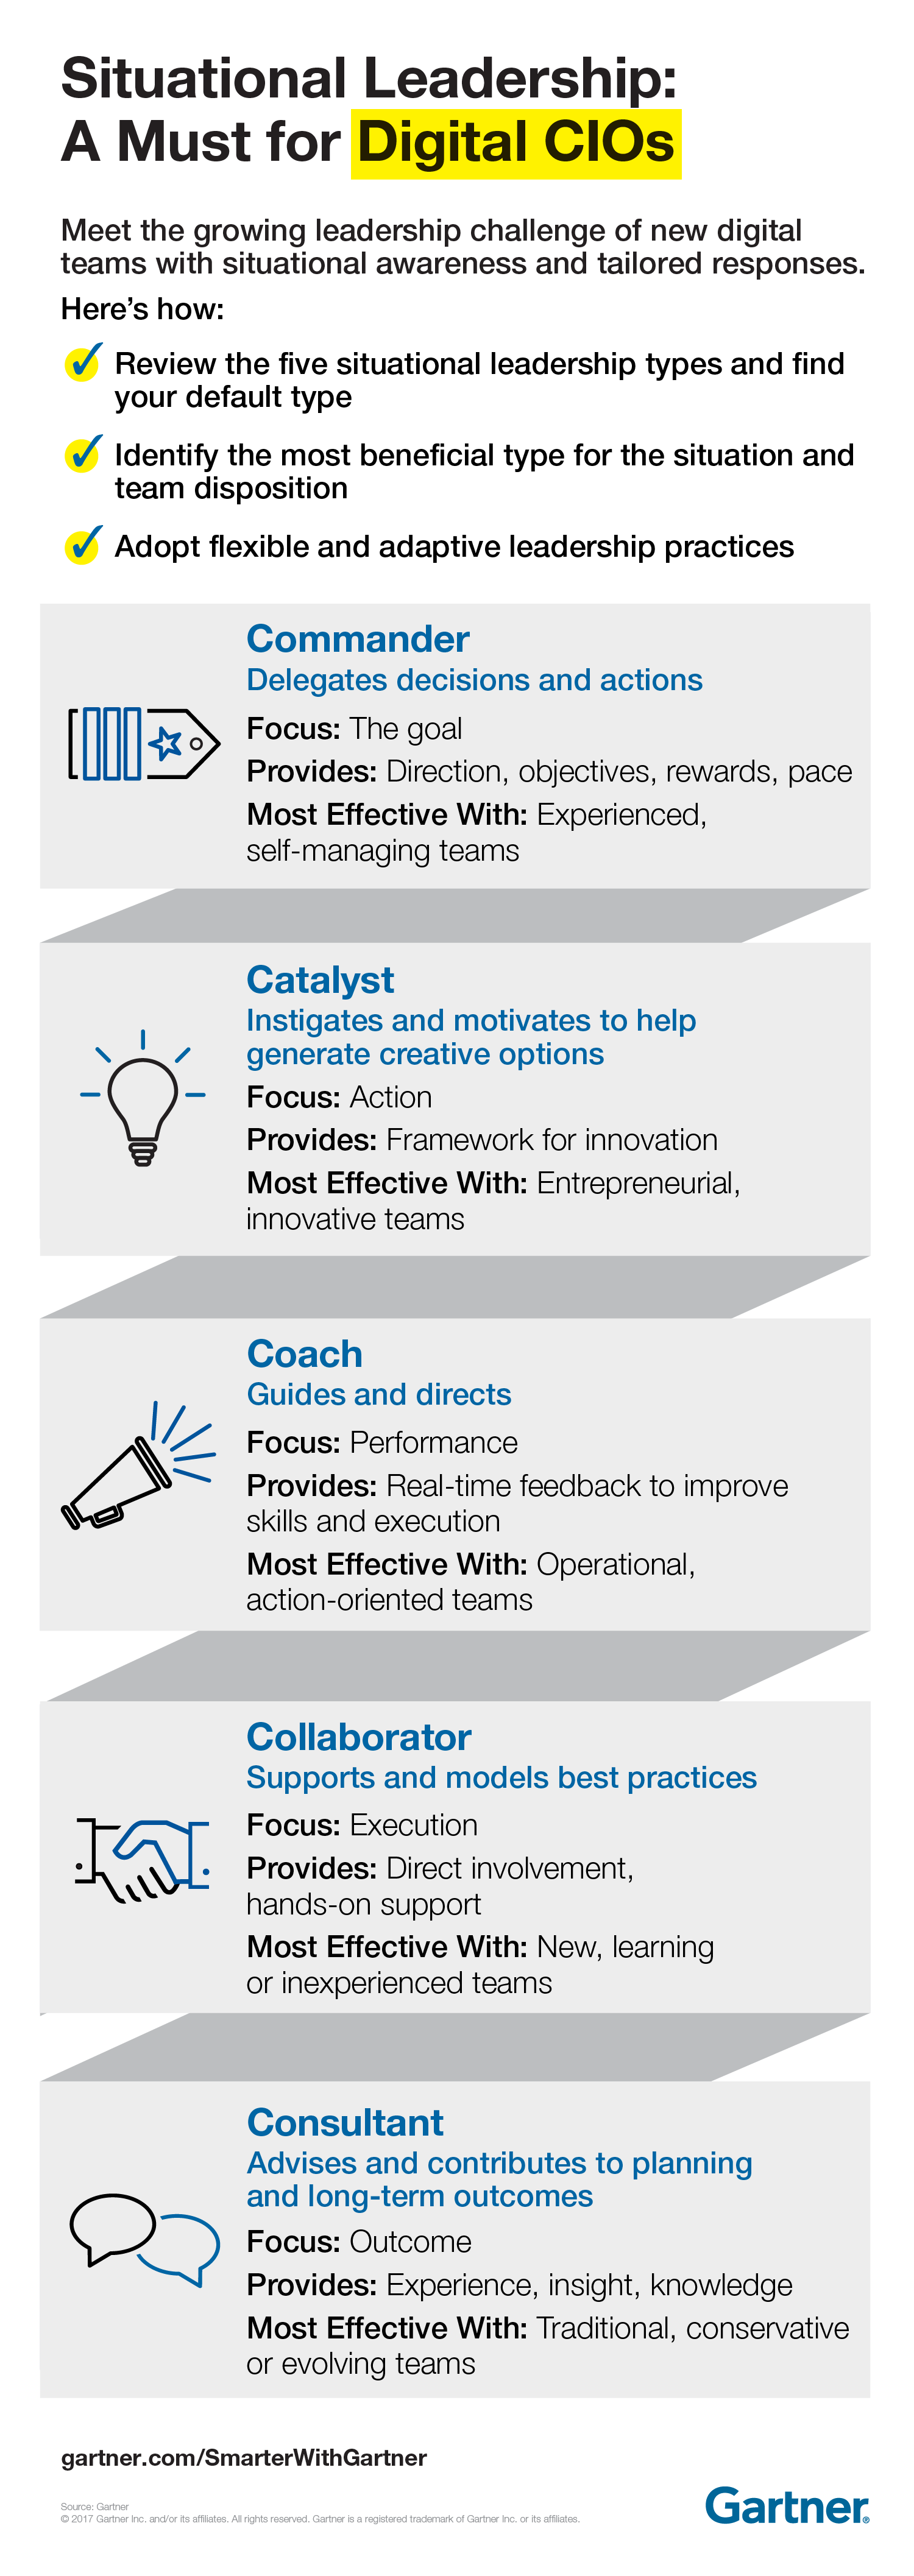 Infographic depicting five types of leadership techniques that CIOs in the digital world must understand.